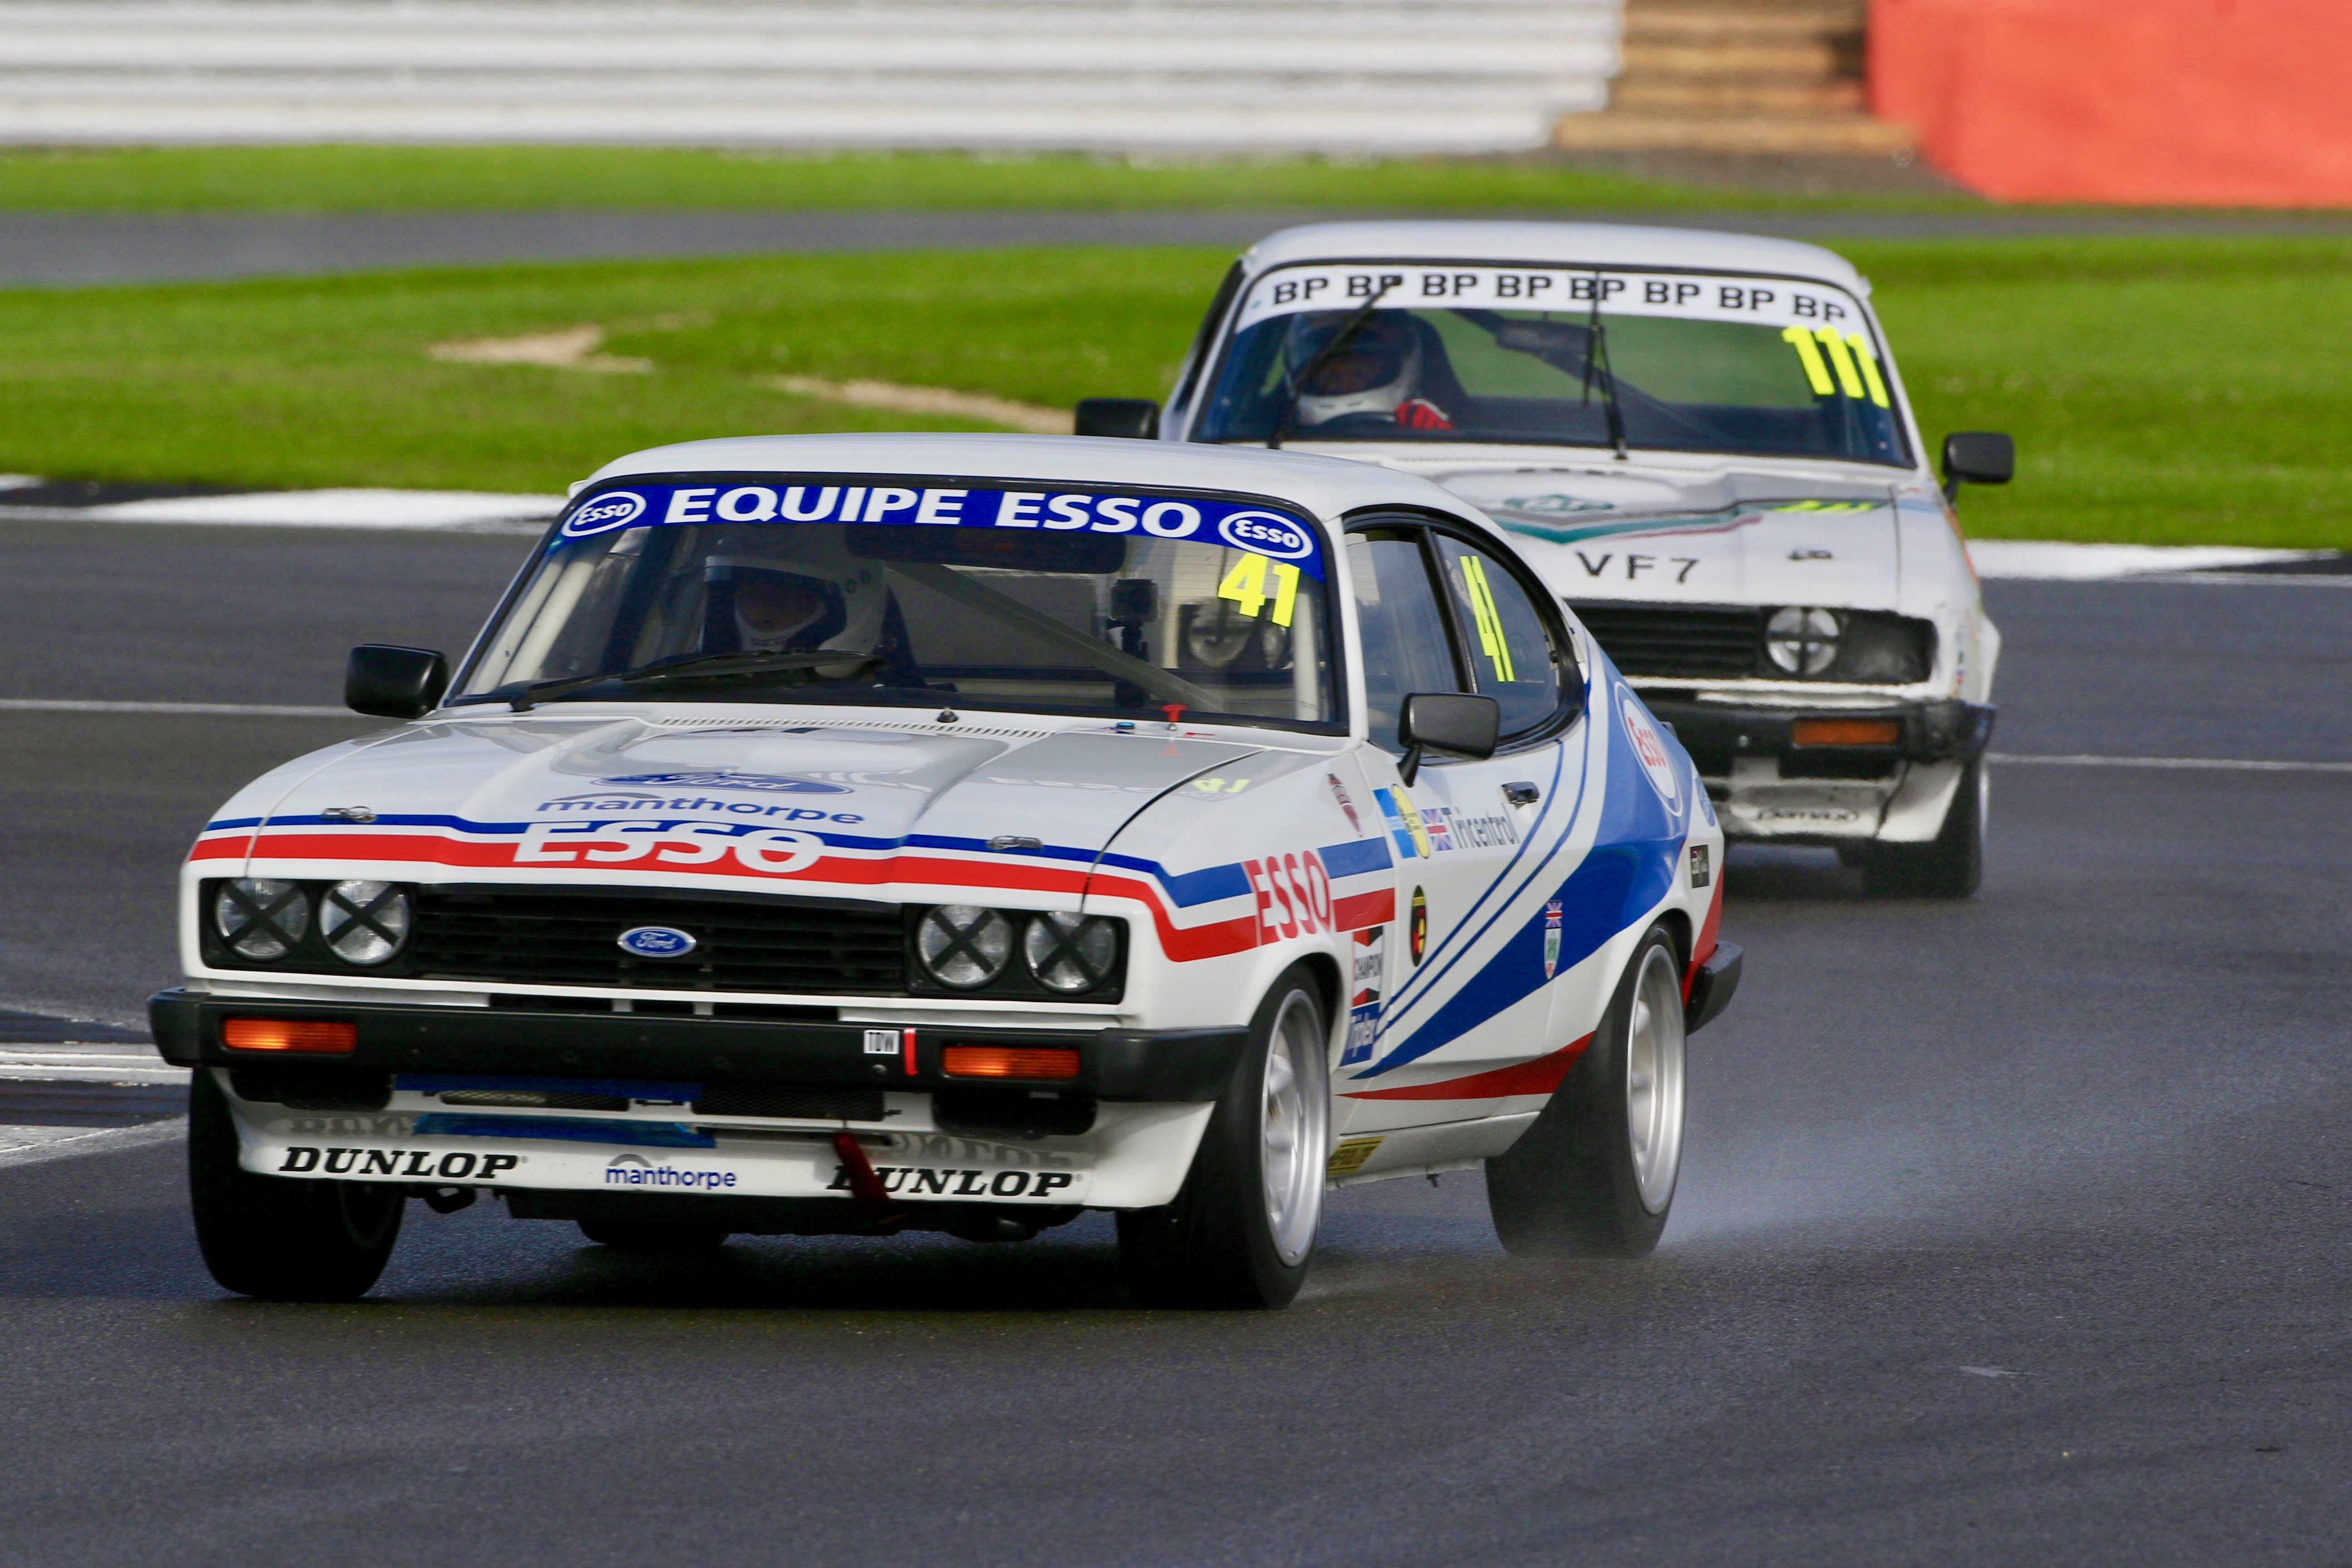 Ford Capris at Silverstone Classic